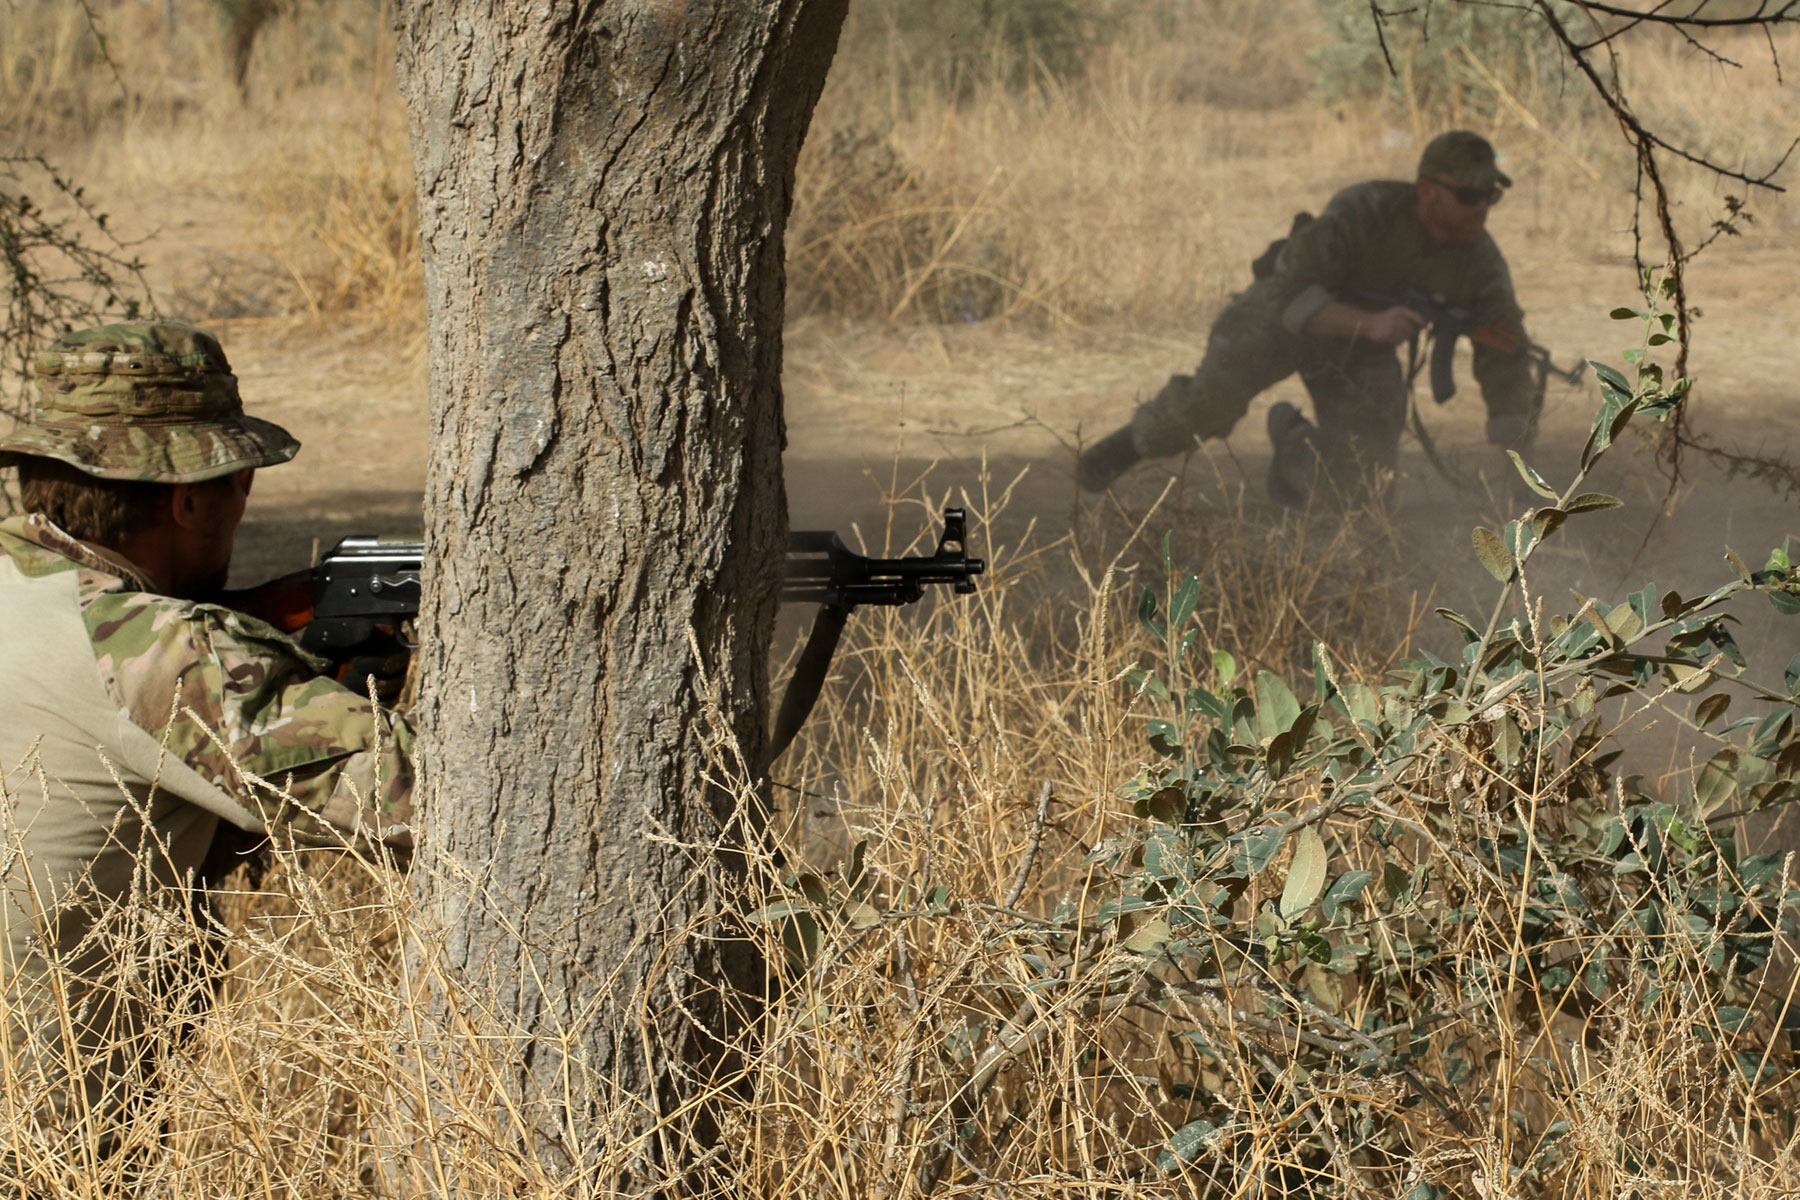 3 Us Troops Killed 2 Wounded In Niger Ambush Africom